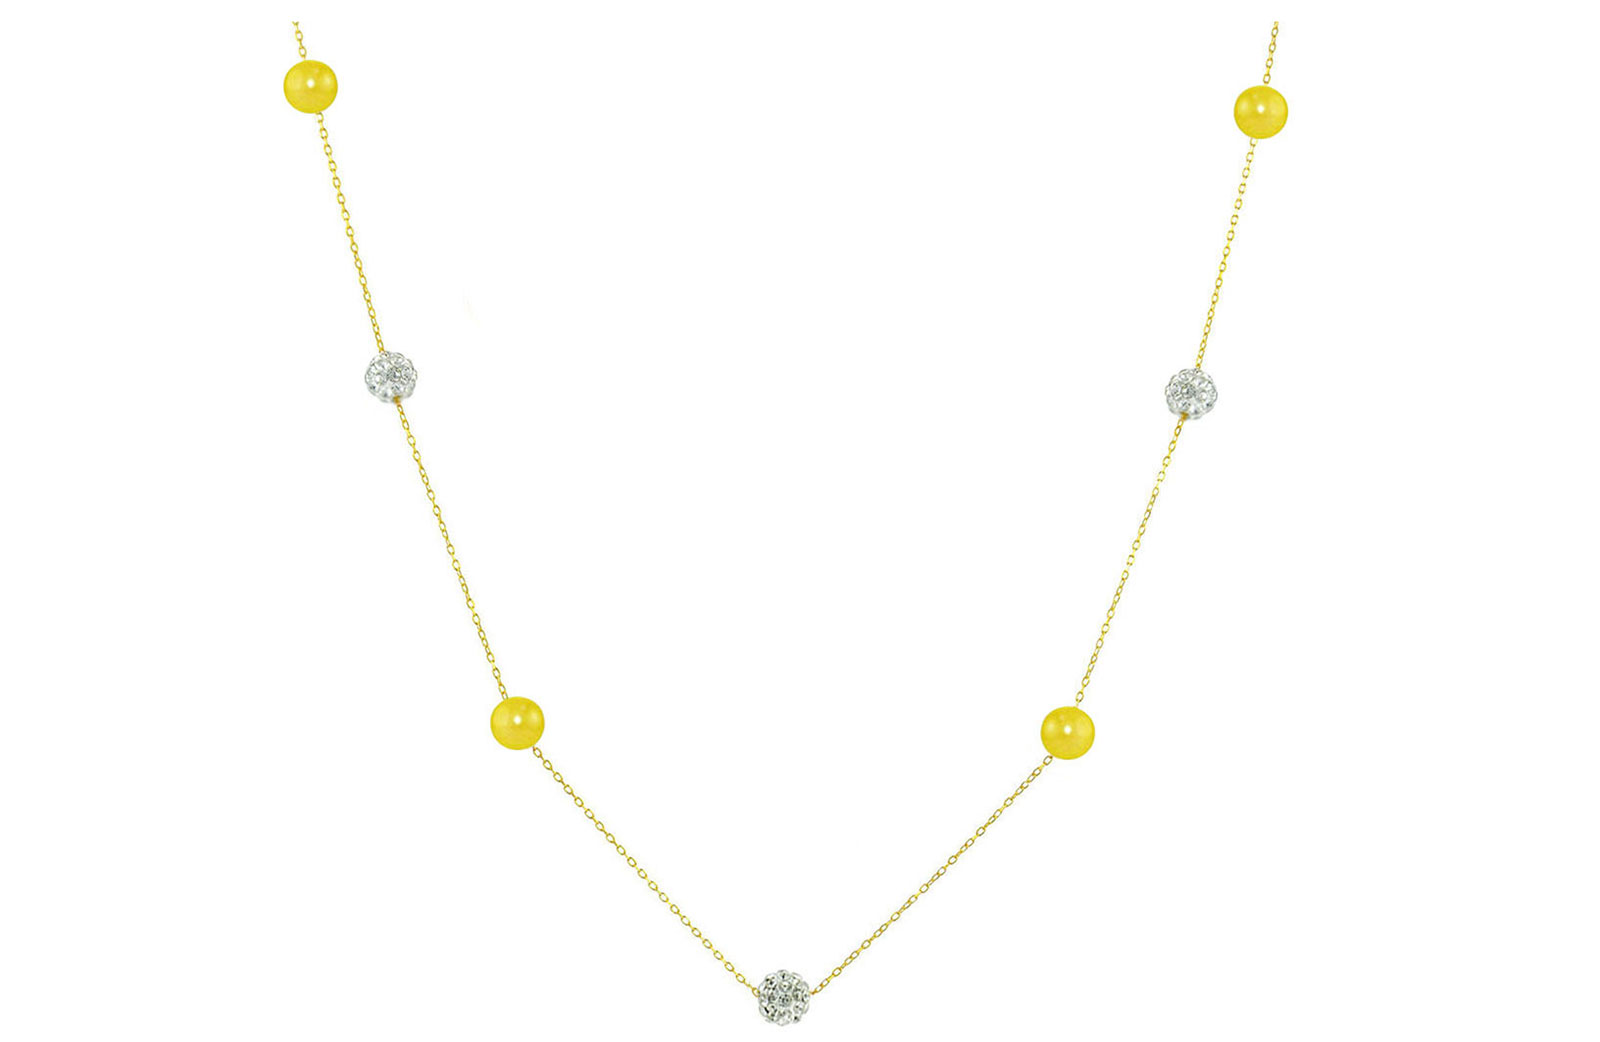 Vera Perla 18K Solid Gold Gradual Built-in 5-6mm Crystal Ball and Yellow Pearls Necklace